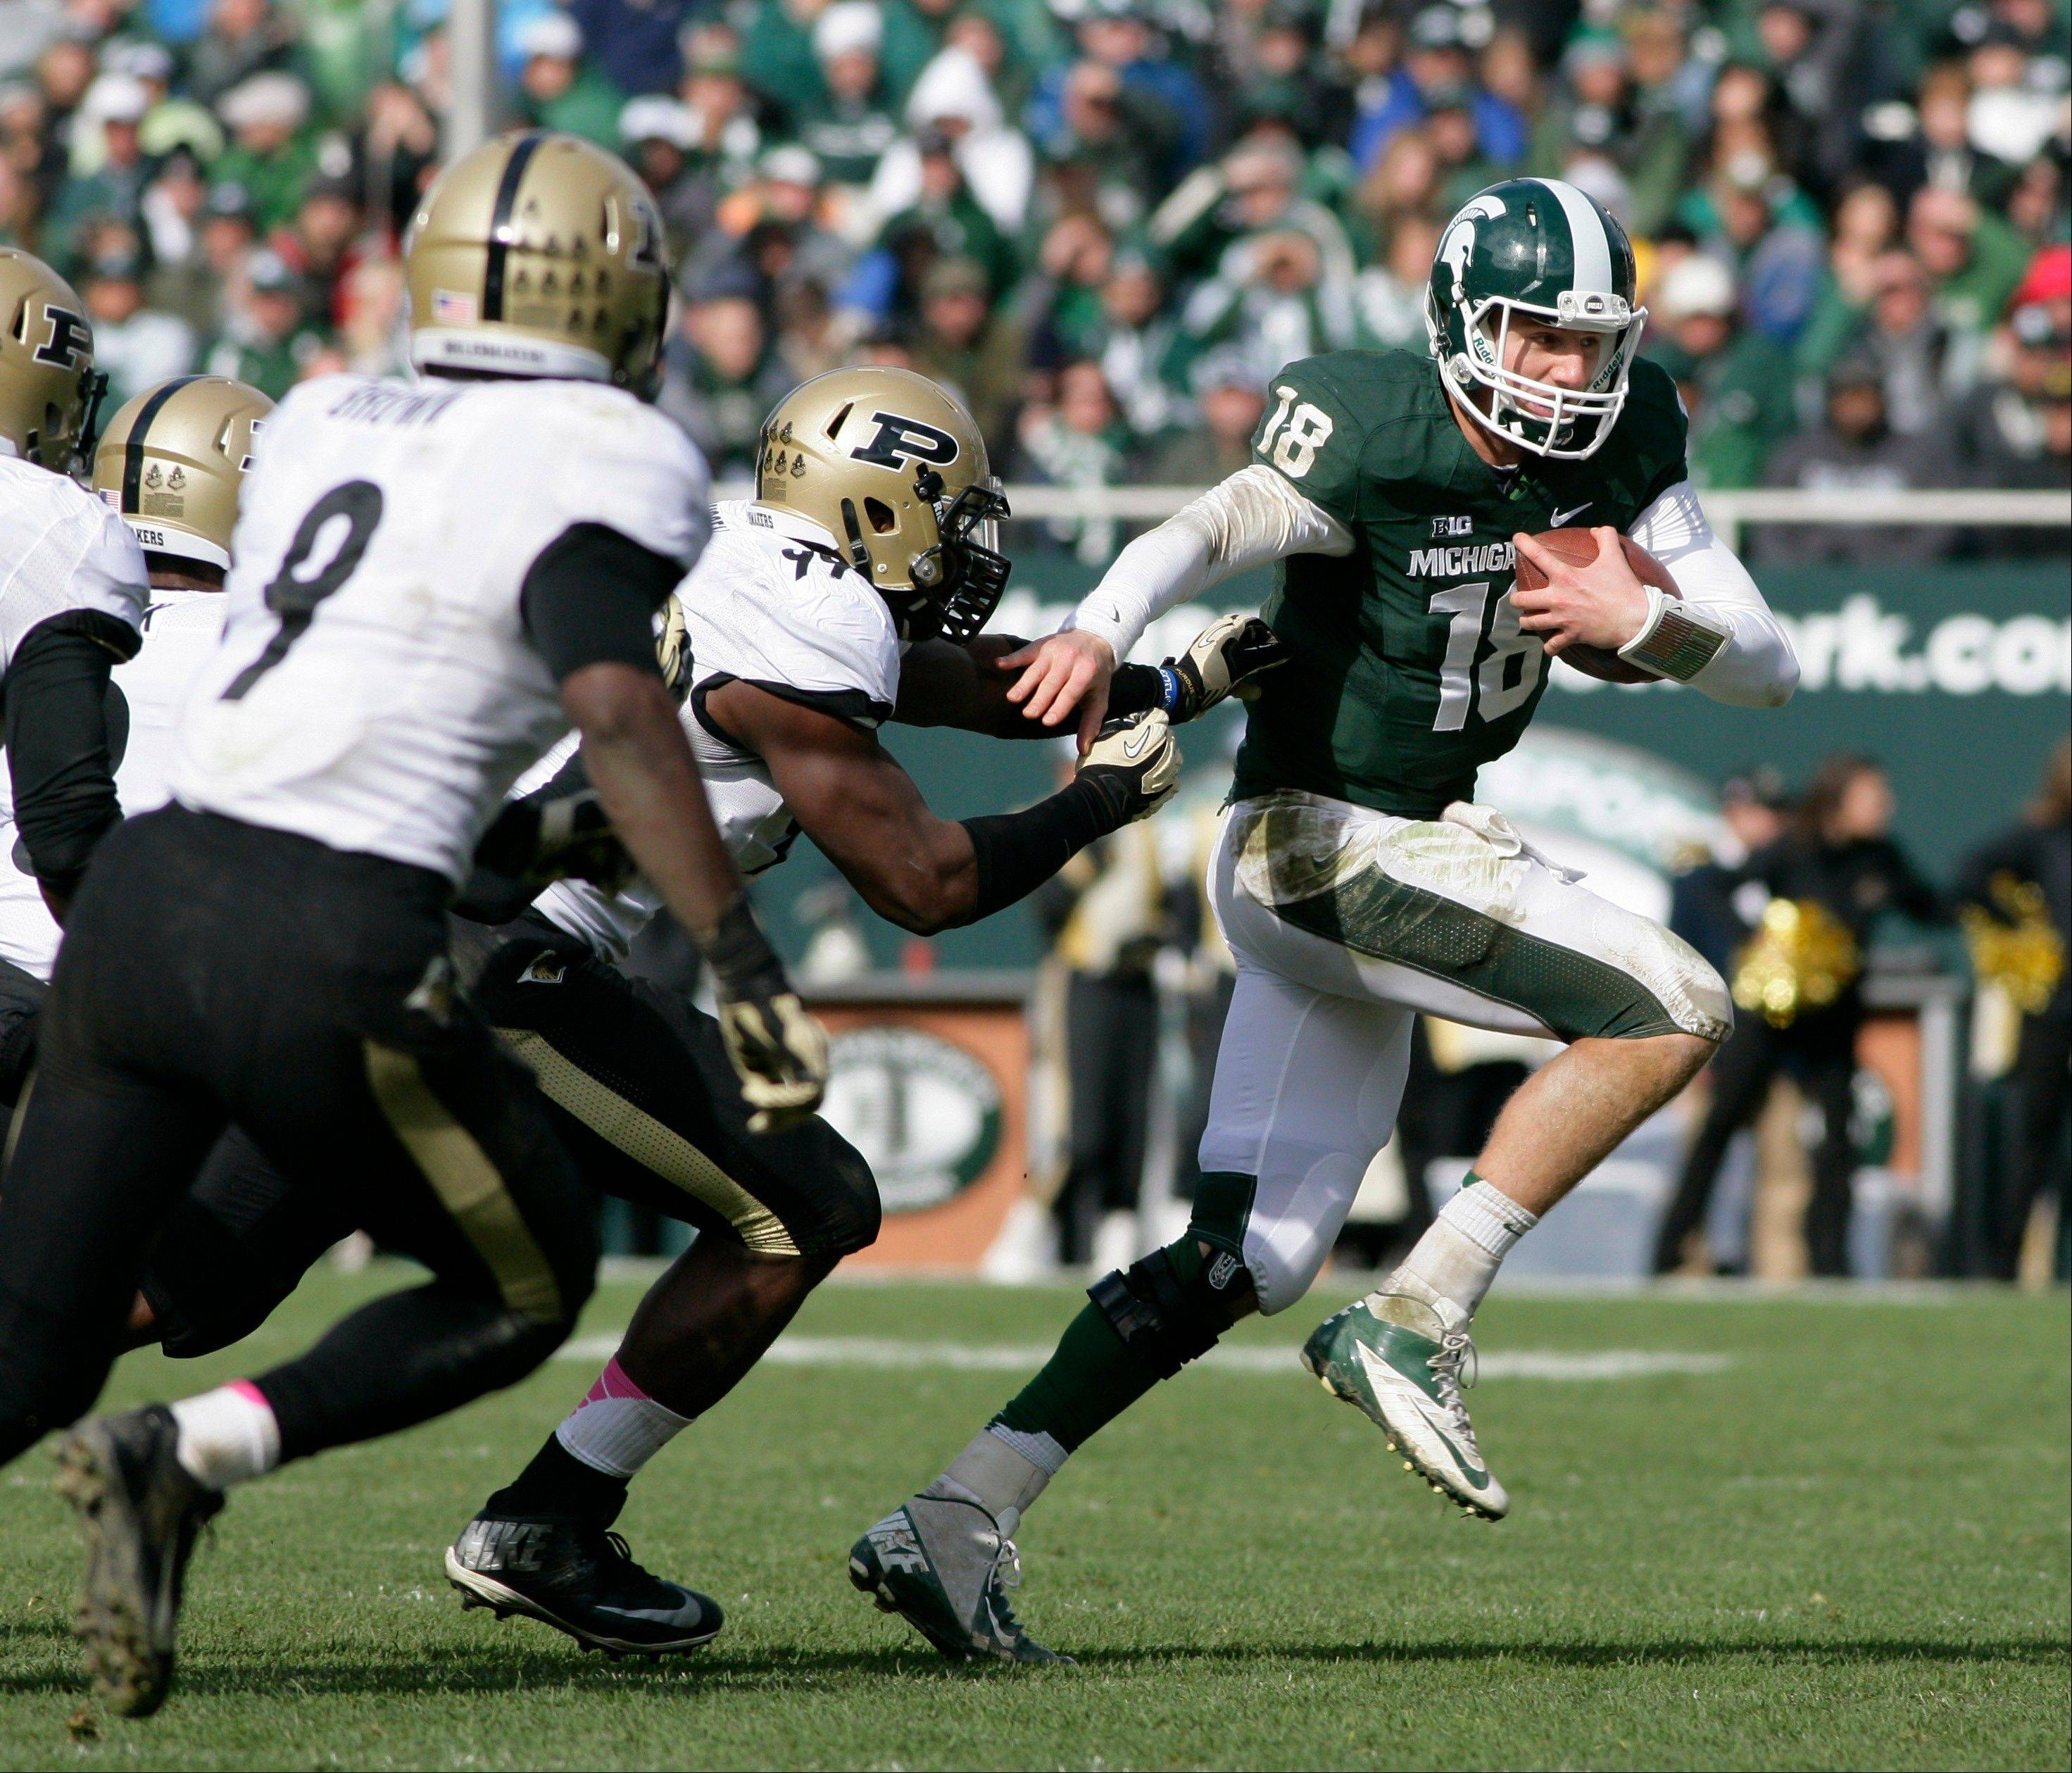 Michigan State quarterback Connor Cook scrambles against Purdue's Ryan Russell, center, and Anthony Brown during the fourth quarter of the Oct. 19 game in East Lansing, Mich. Heading into the final month of regular season Michigan State is battling for supremacy in the Big Ten's Legends Division with Michigan and Nebraska.